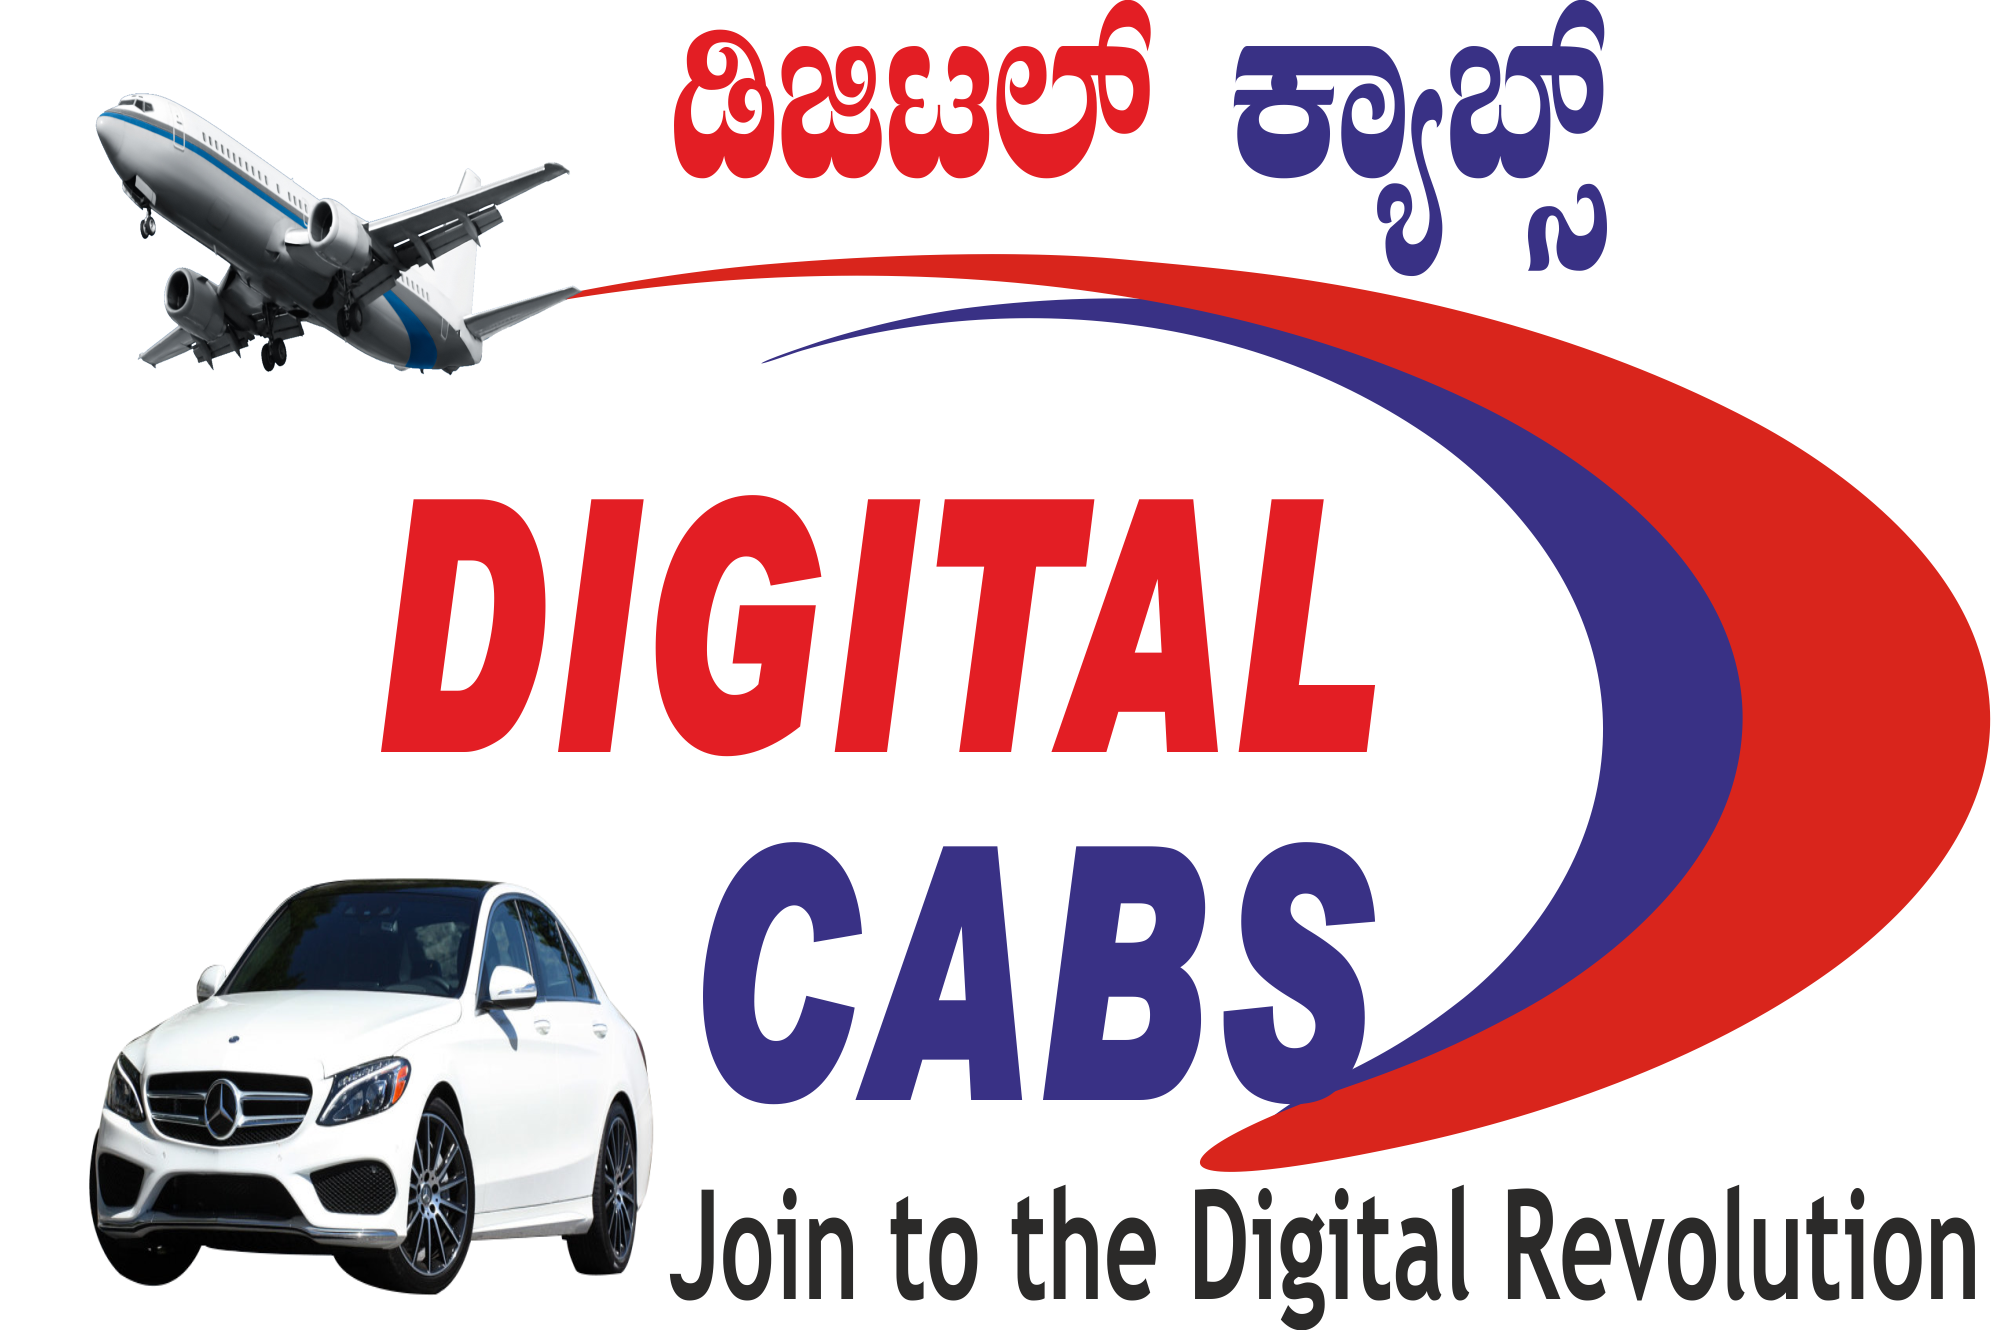 cabs in bangalore, cabs in hsr layout, cabs in hebbal, cabs in whitefield, cabs in peenya, cabs in BTM, cabs in koramangala, cabs in marthahalli, cabs in bannerughatta